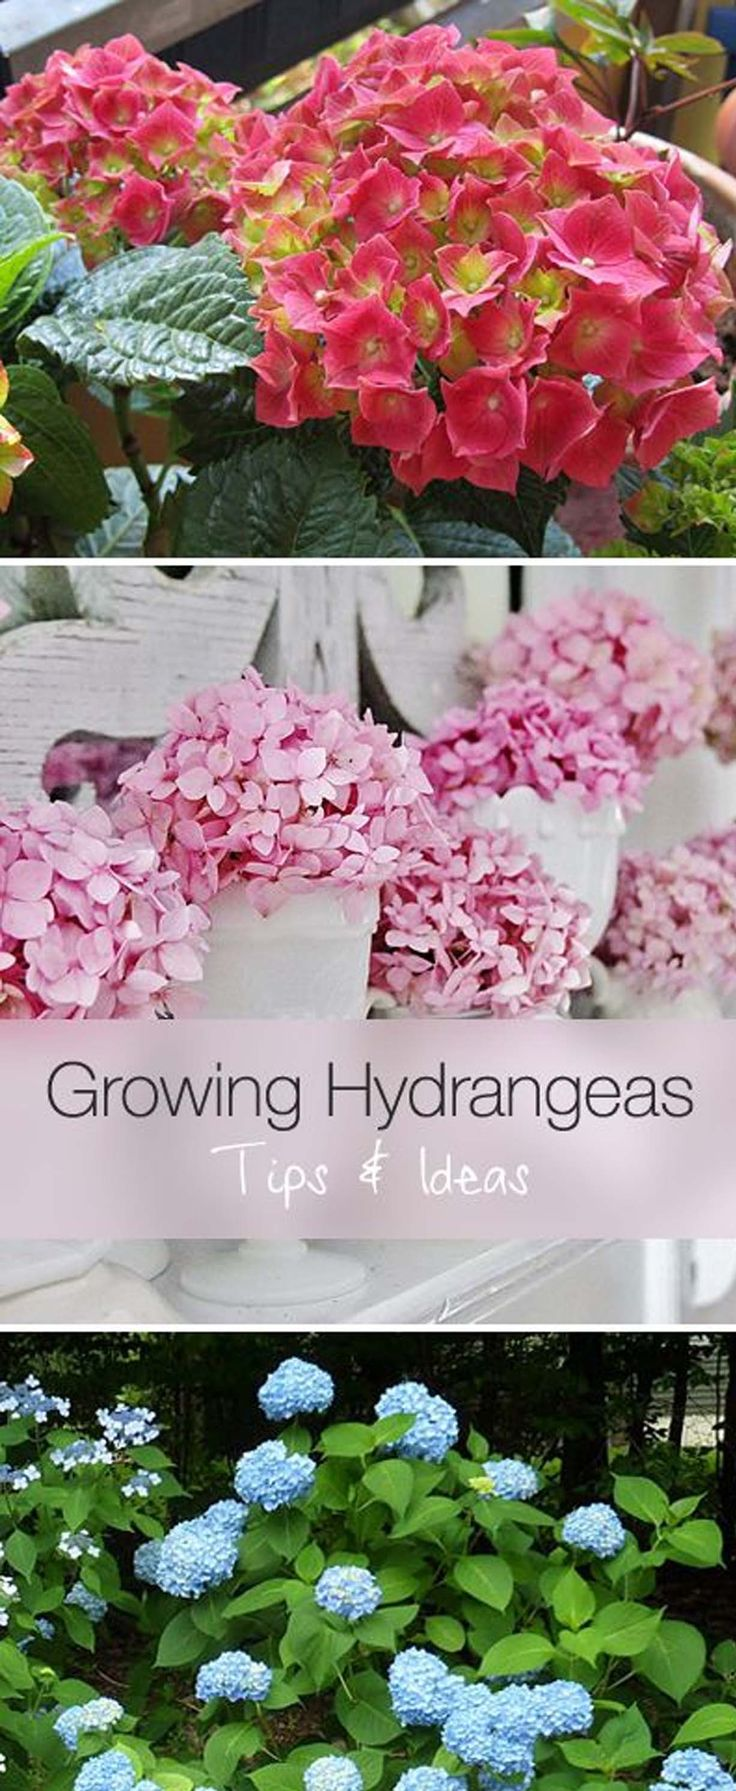 Growing Hydrangeas #Tip #MyGardenGrows #Win